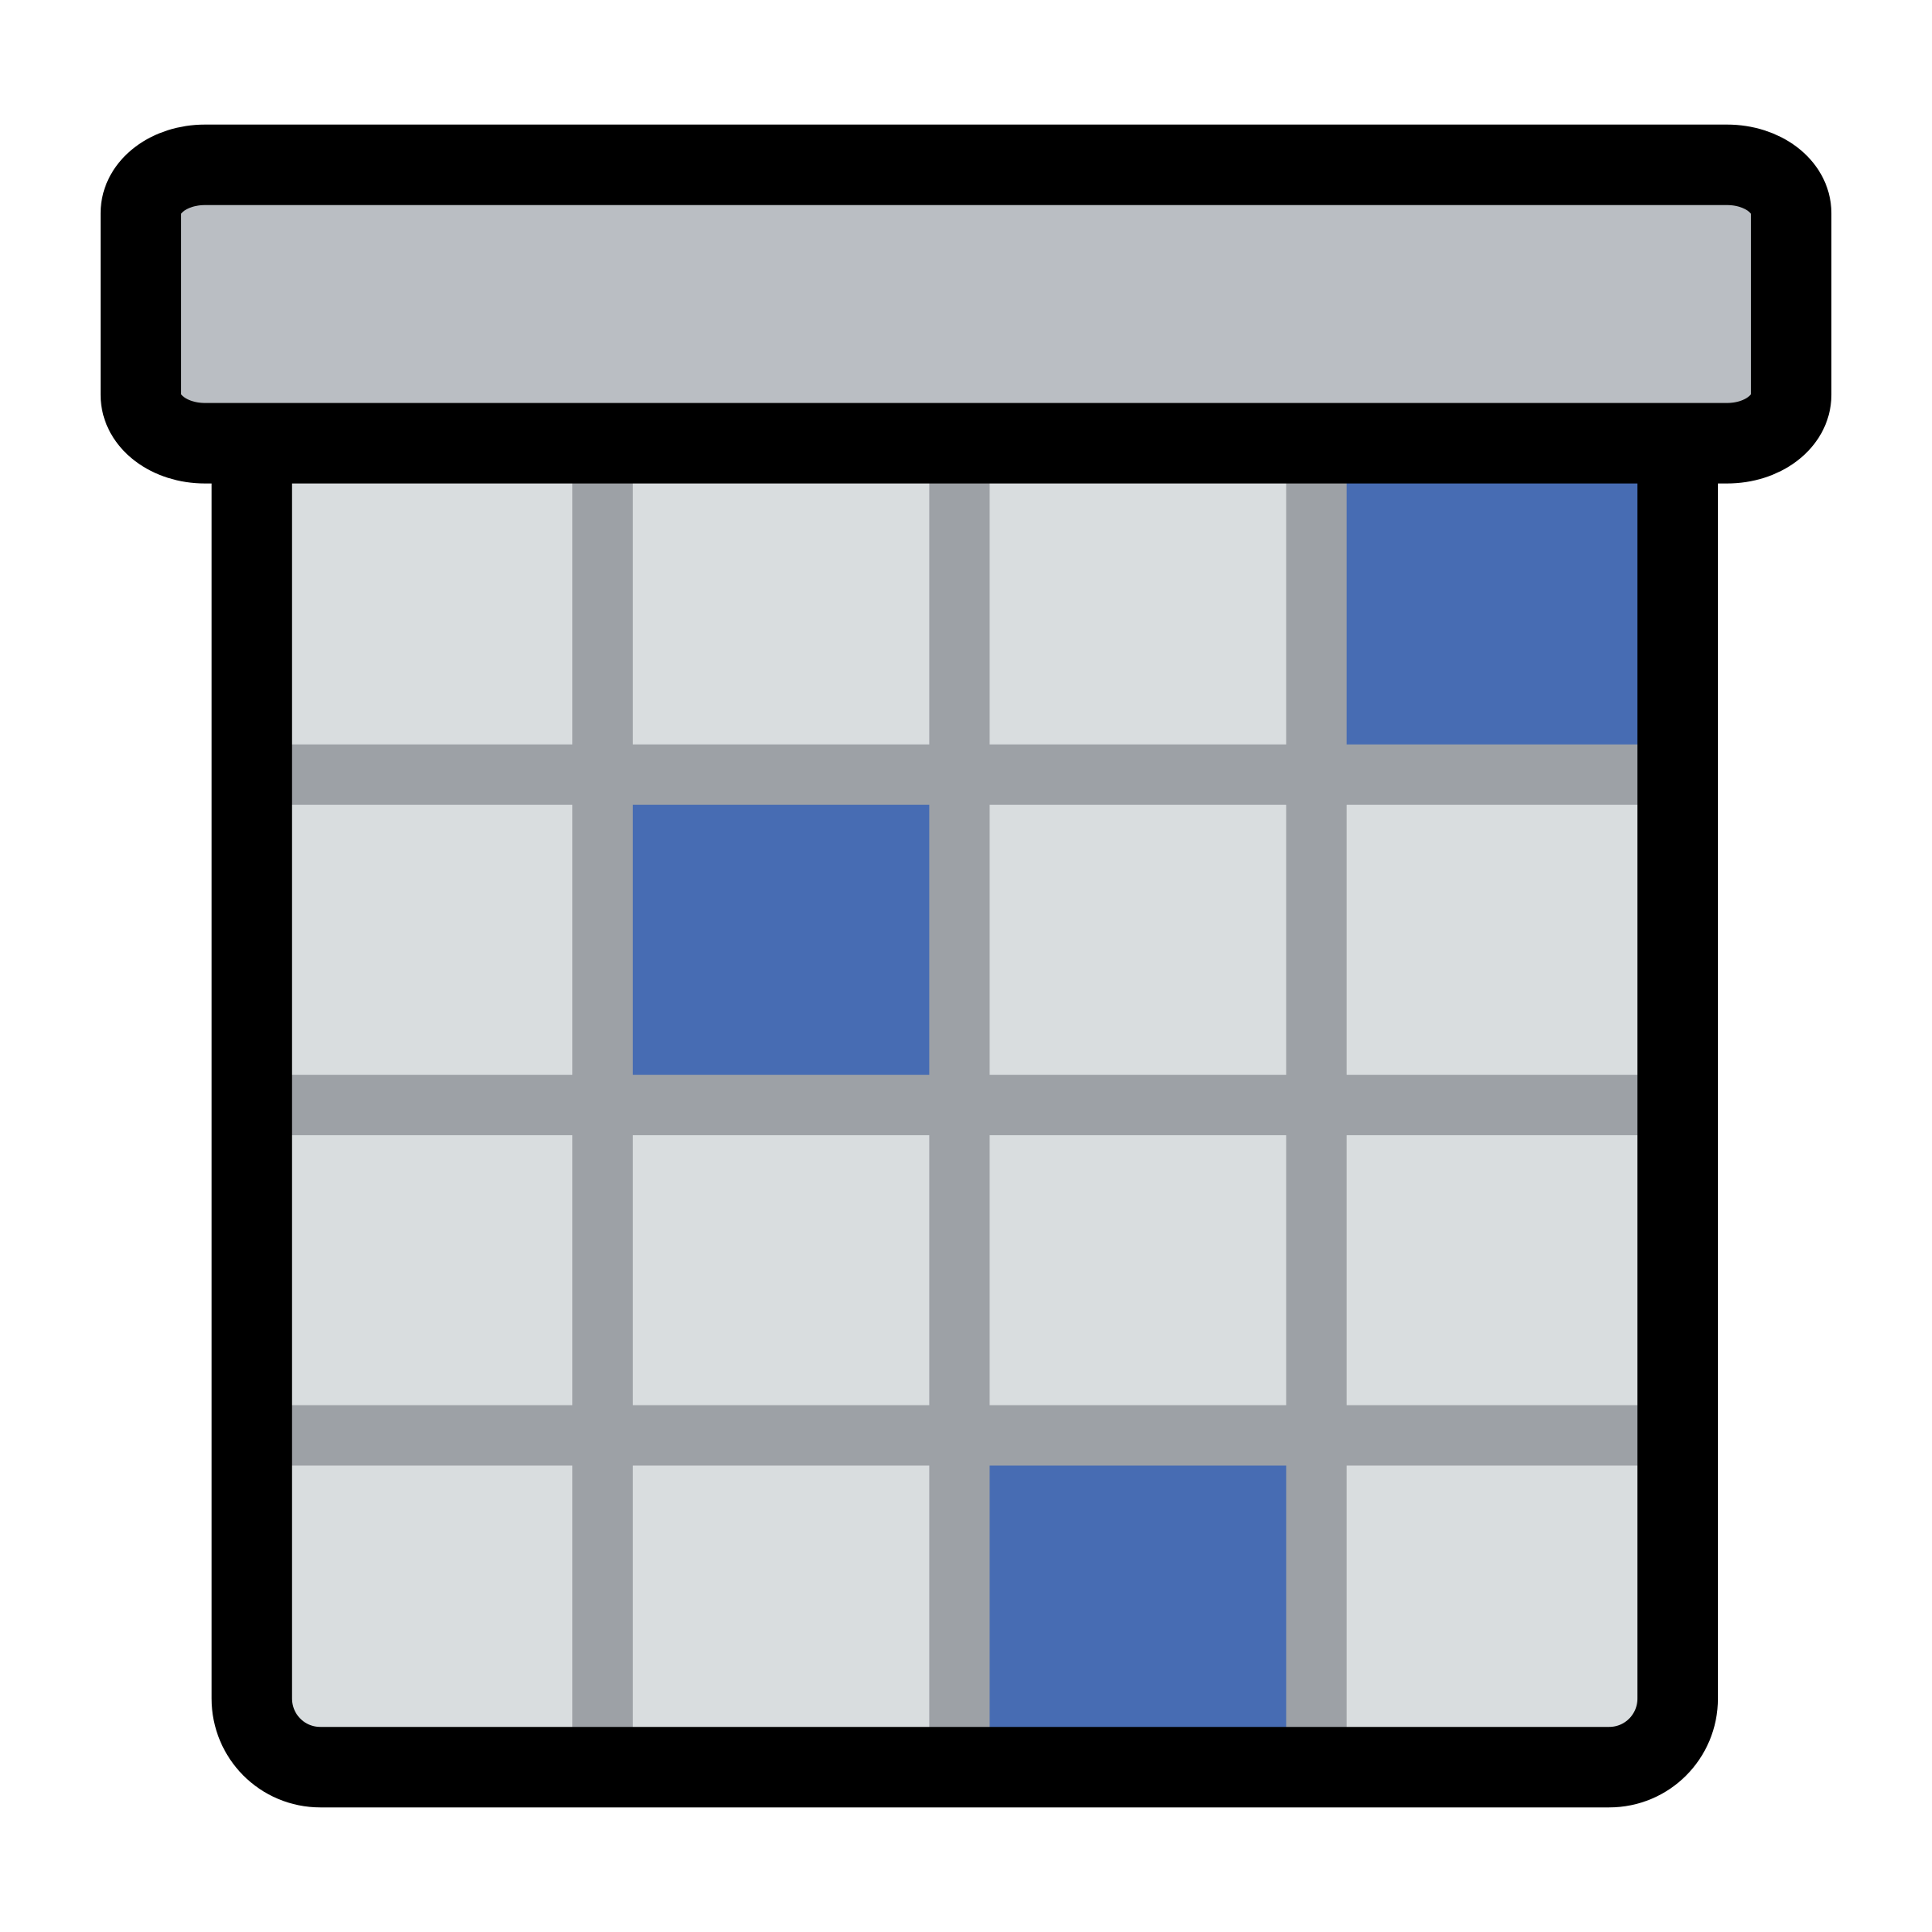 Agenda clipart primary data. Icons png free and